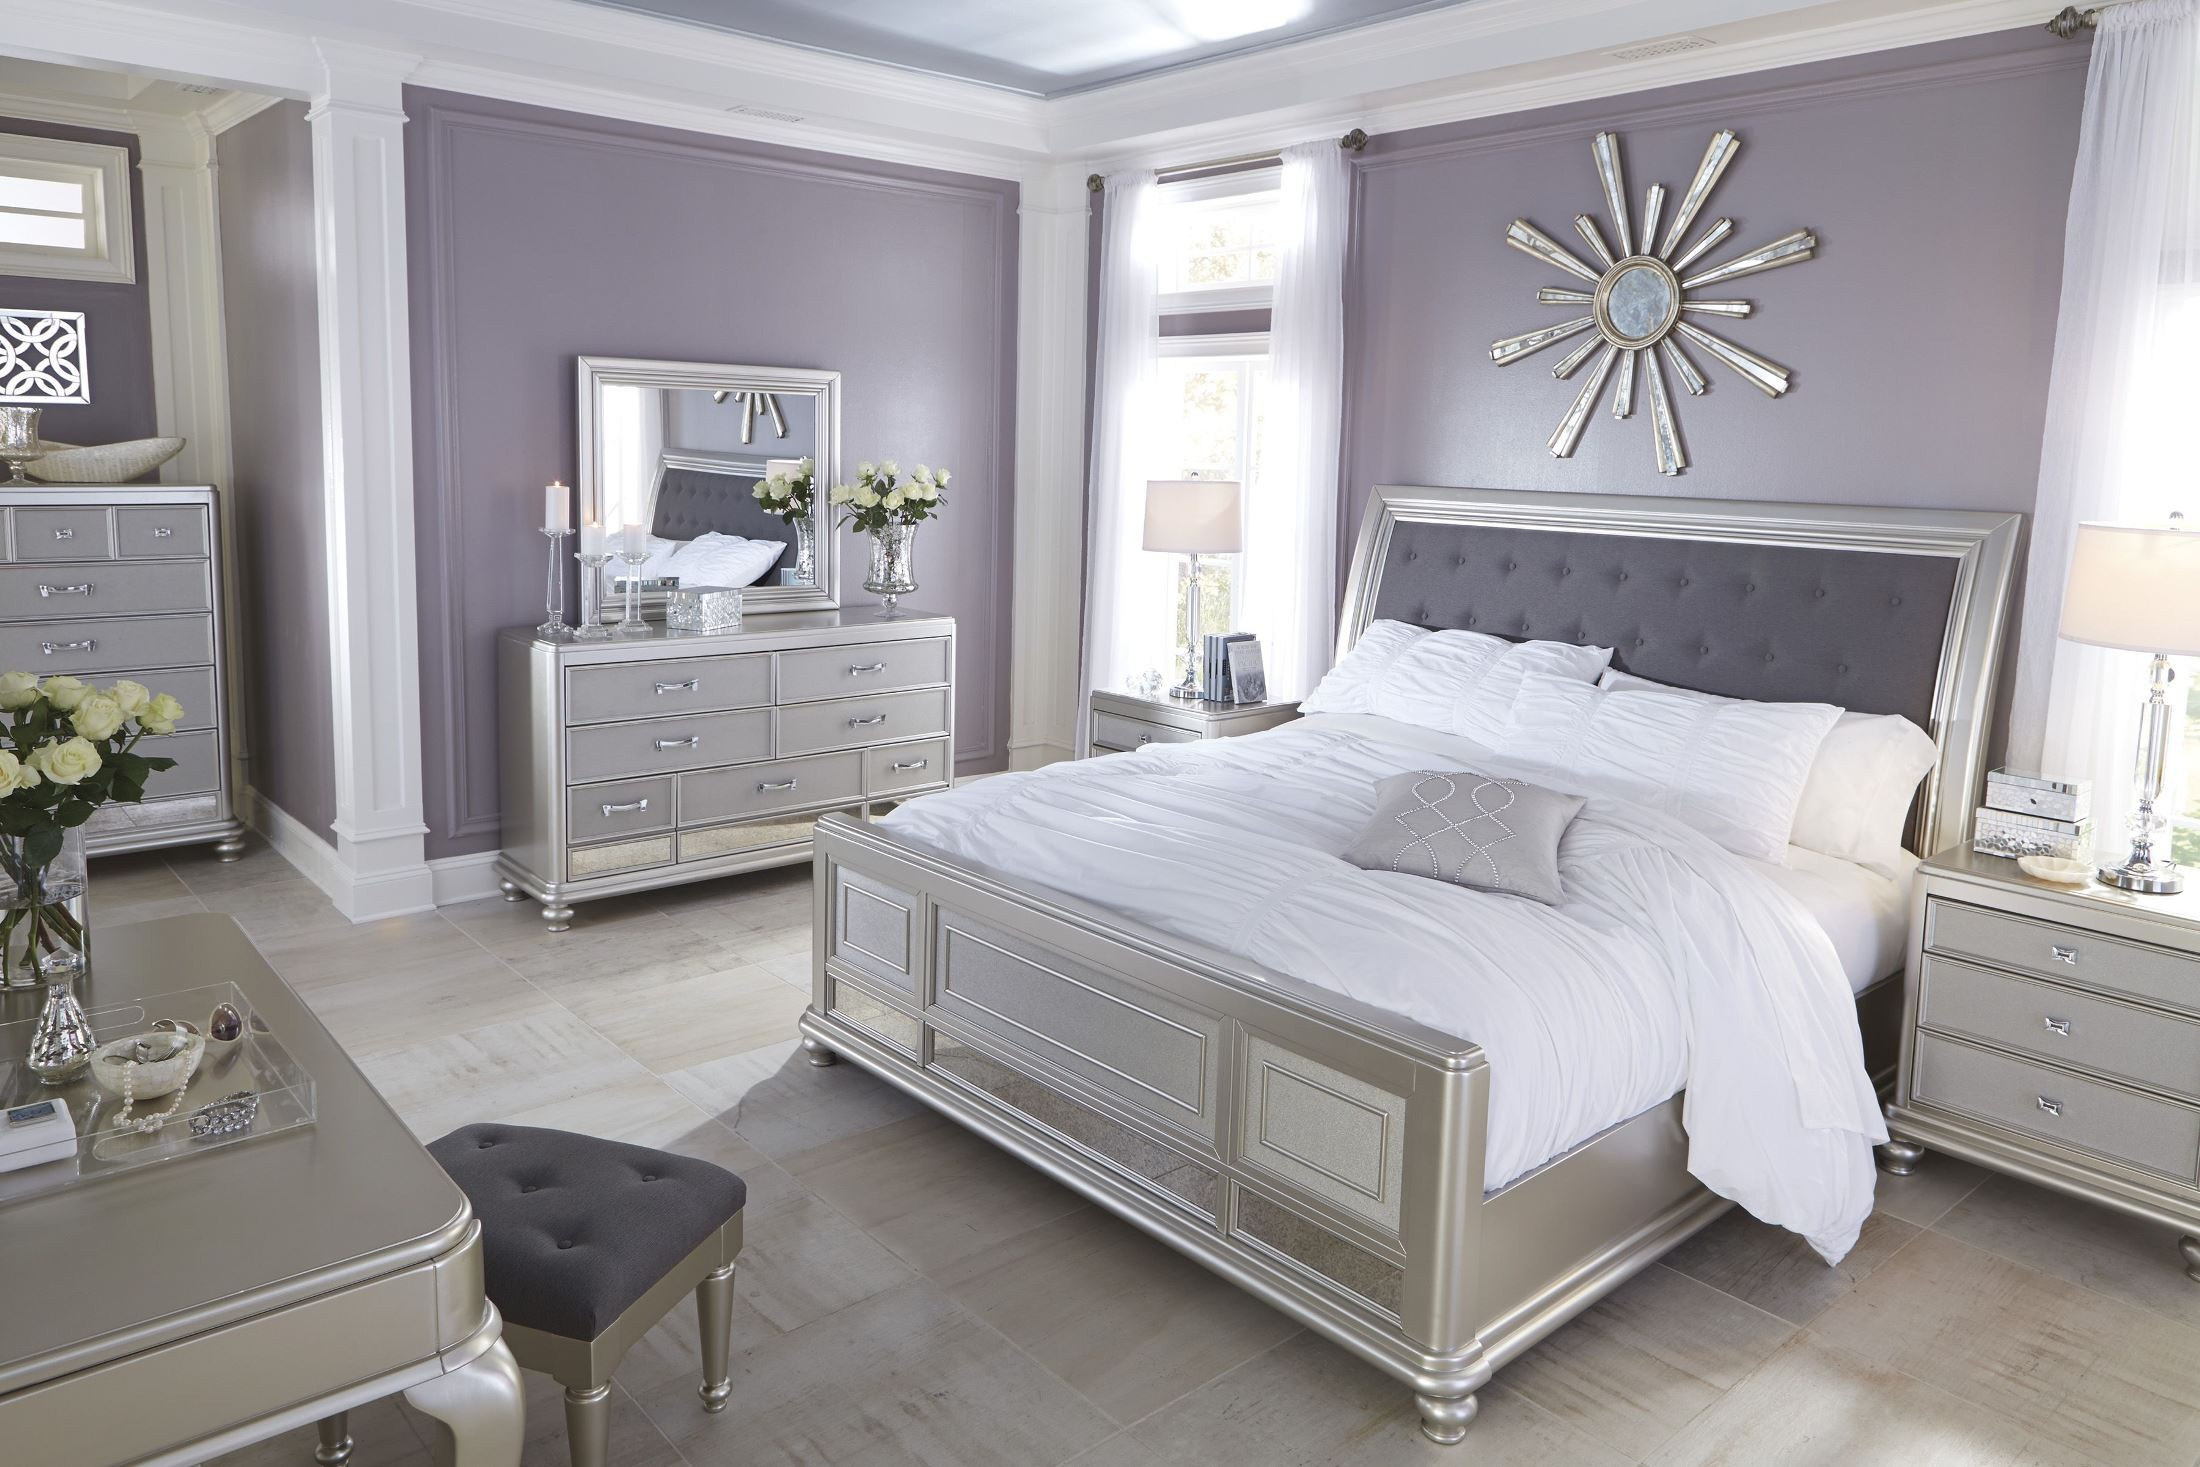 Coralayne silver bedroom set b650 157 54 96 ashley furniture - Ashley furniture bedroom packages ...